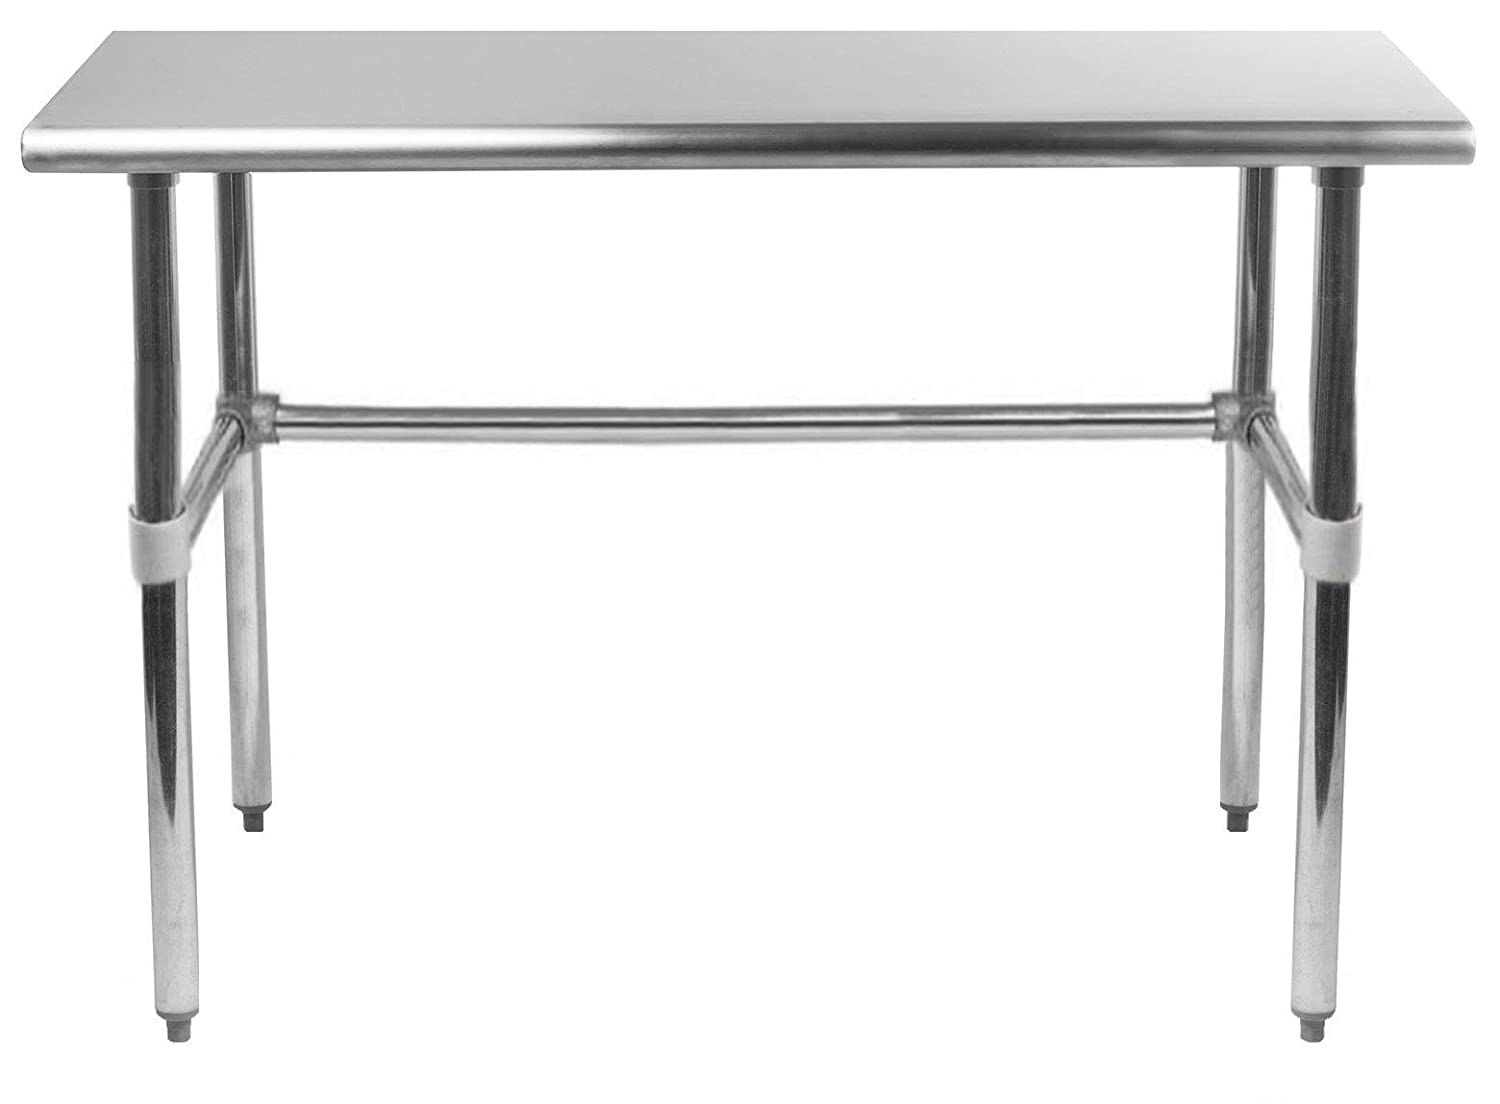 "AmGood Stainless Steel Work Table Open Base | Removable Crossbar | NSF Certified | Kitchen Island Food Prep | Laundry Garage Utility Bench (36"" Long x 24"" Deep)"